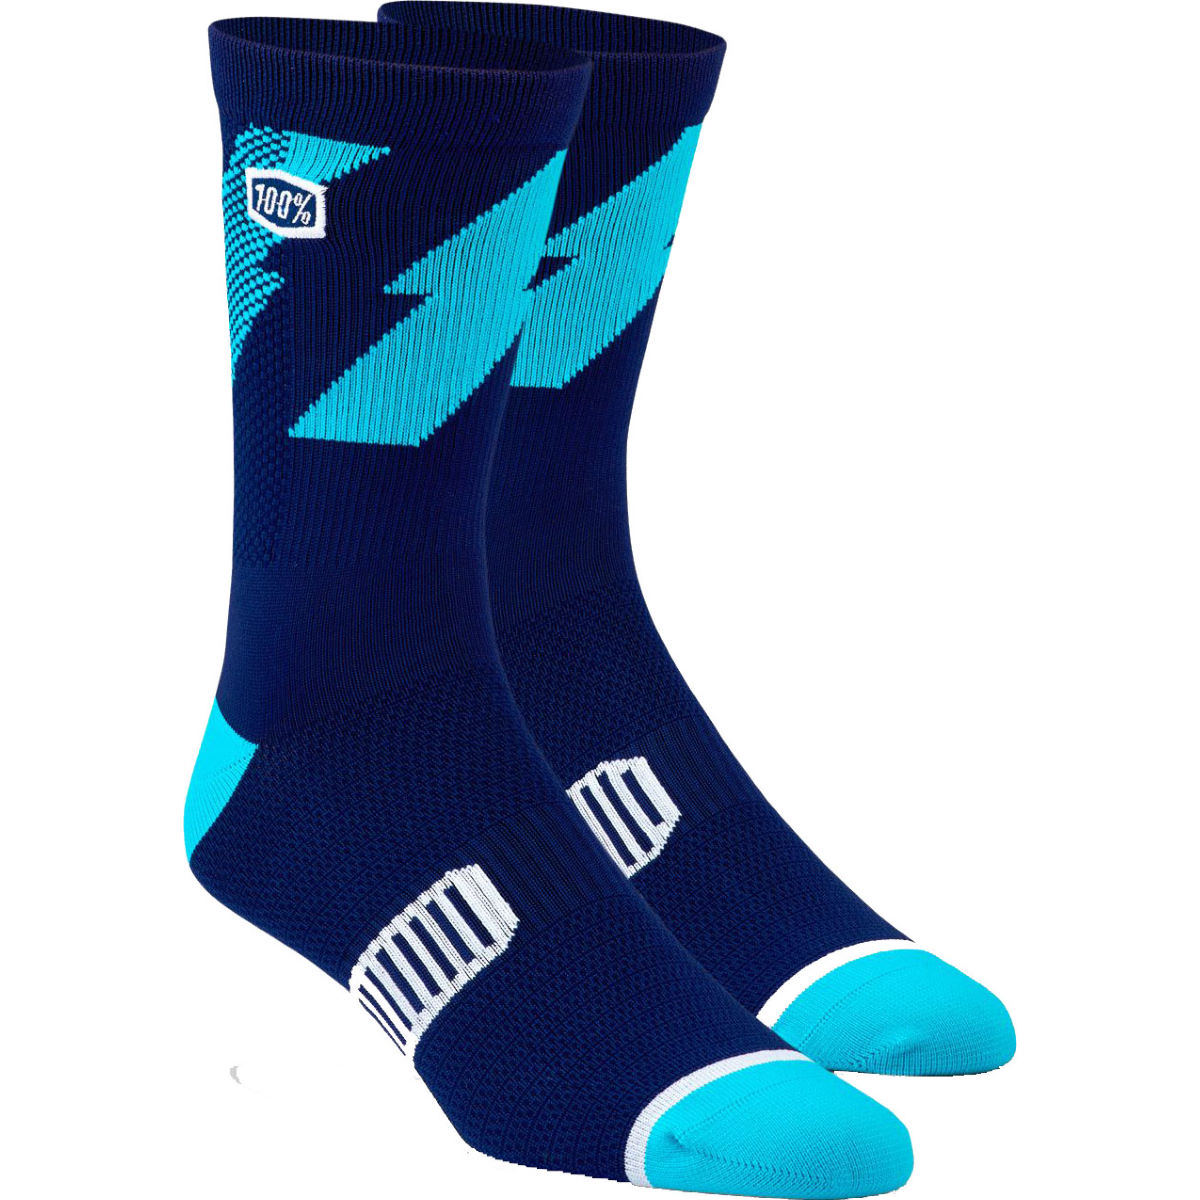 100% Bolt Performance Socks - Calcetines de ciclismo